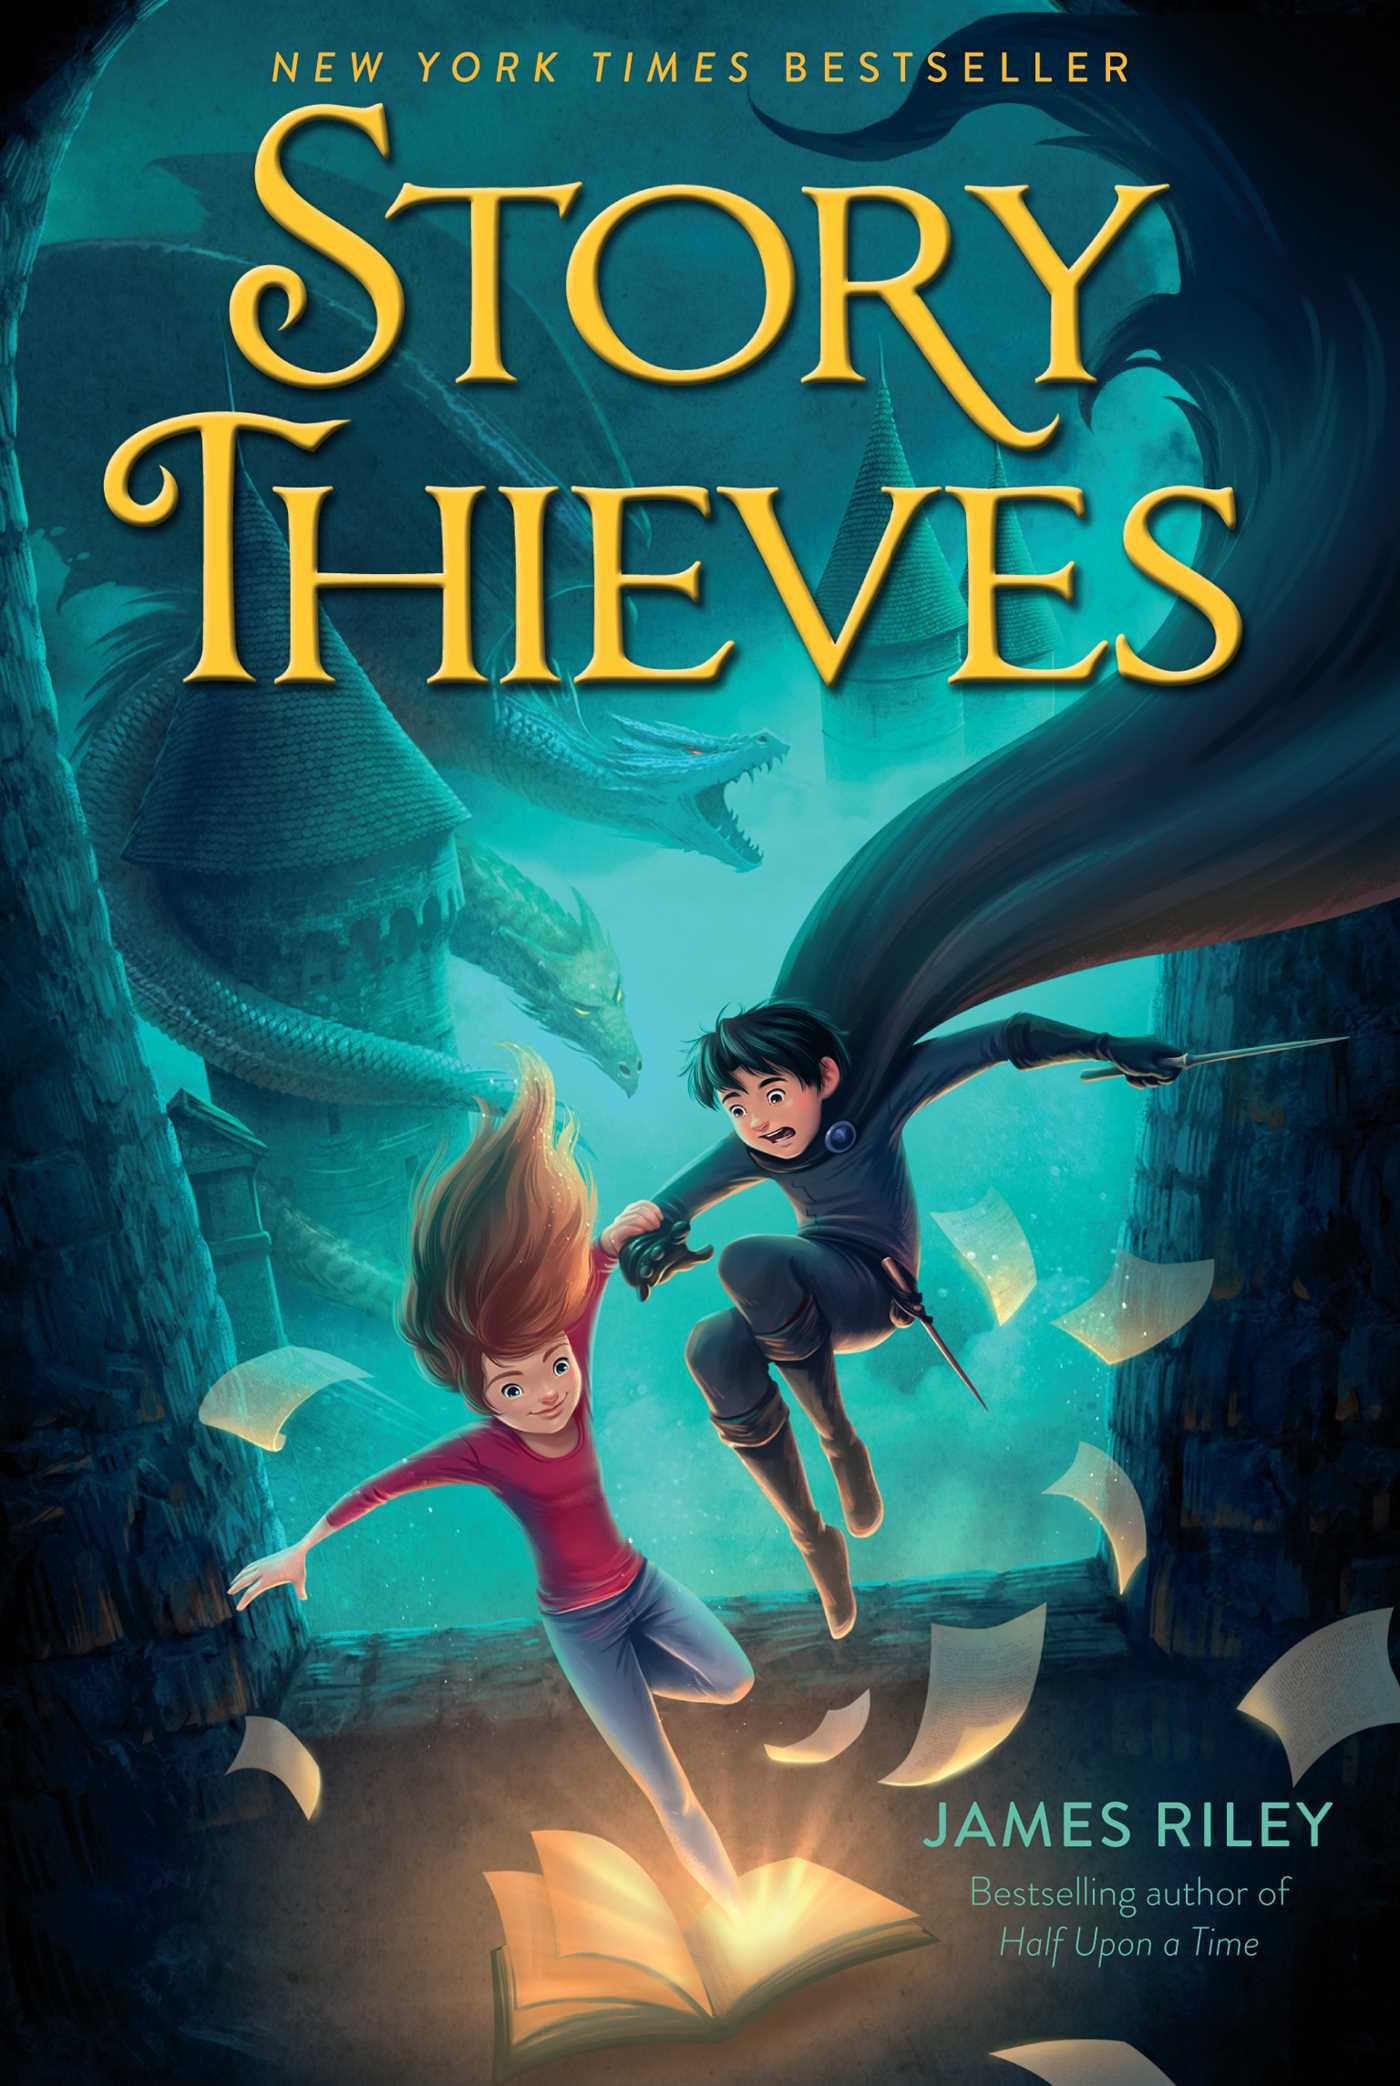 Story thieves summary